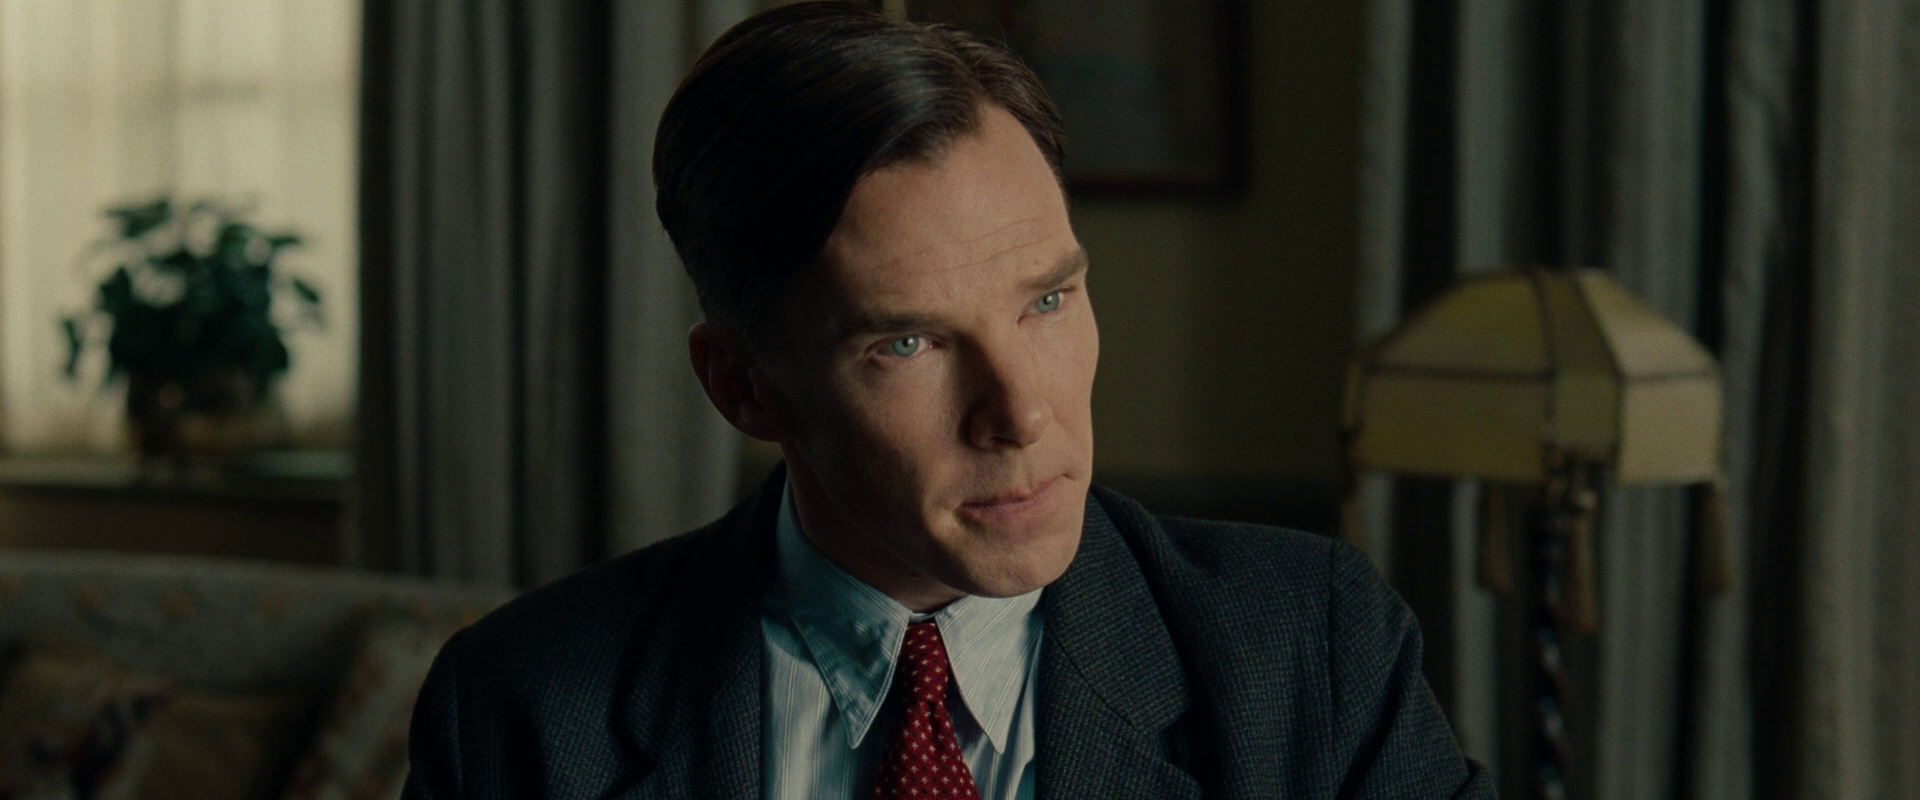 The Imitation Game 2014 1080p BluRay DTS x264-EbP